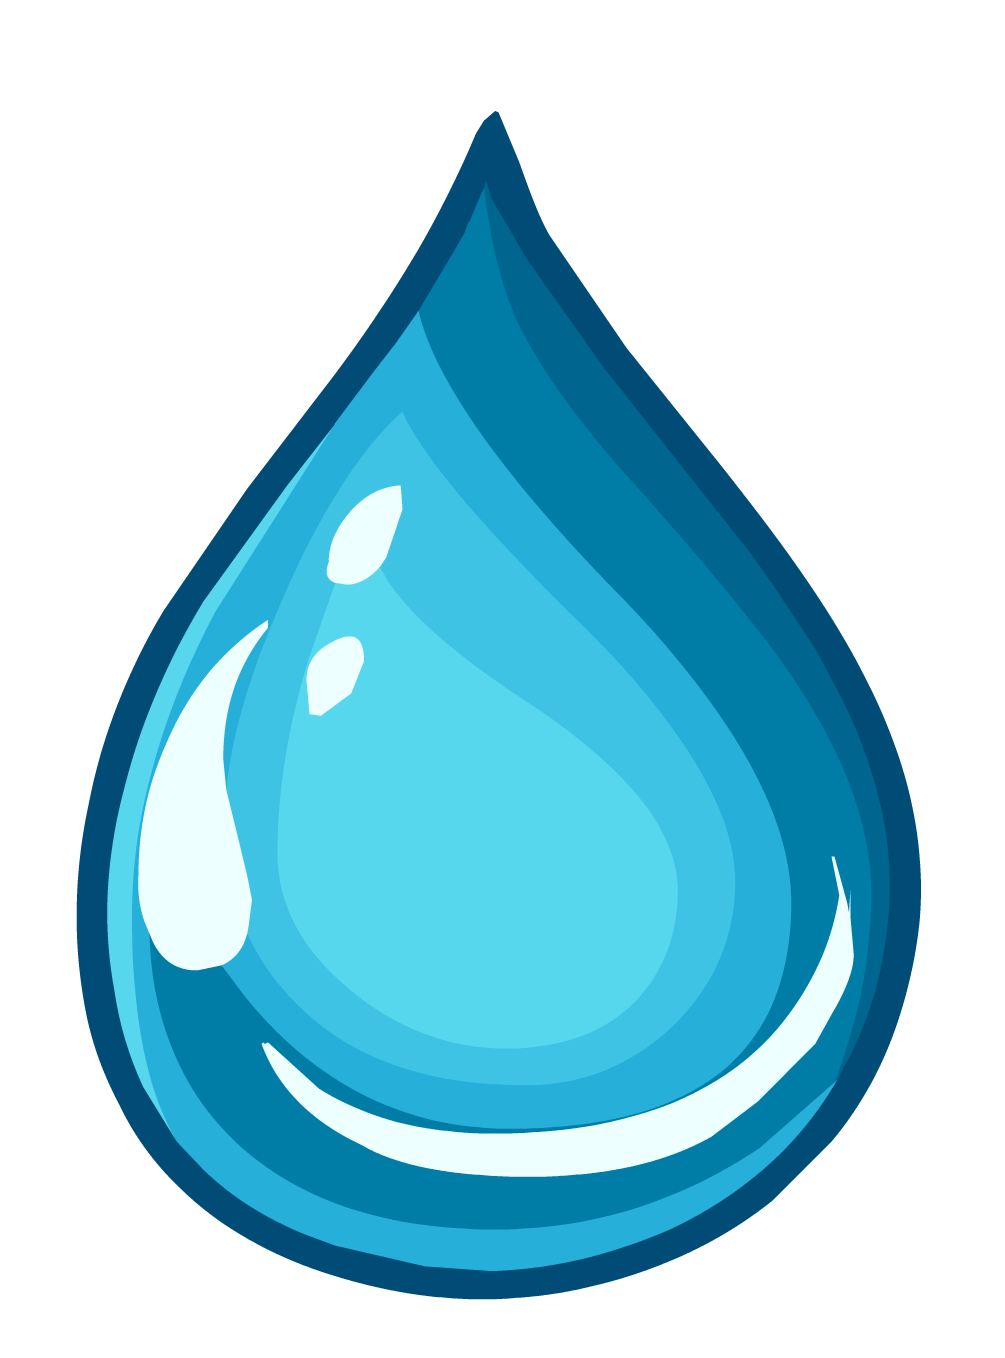 Cleaning Water Clipart Clipground